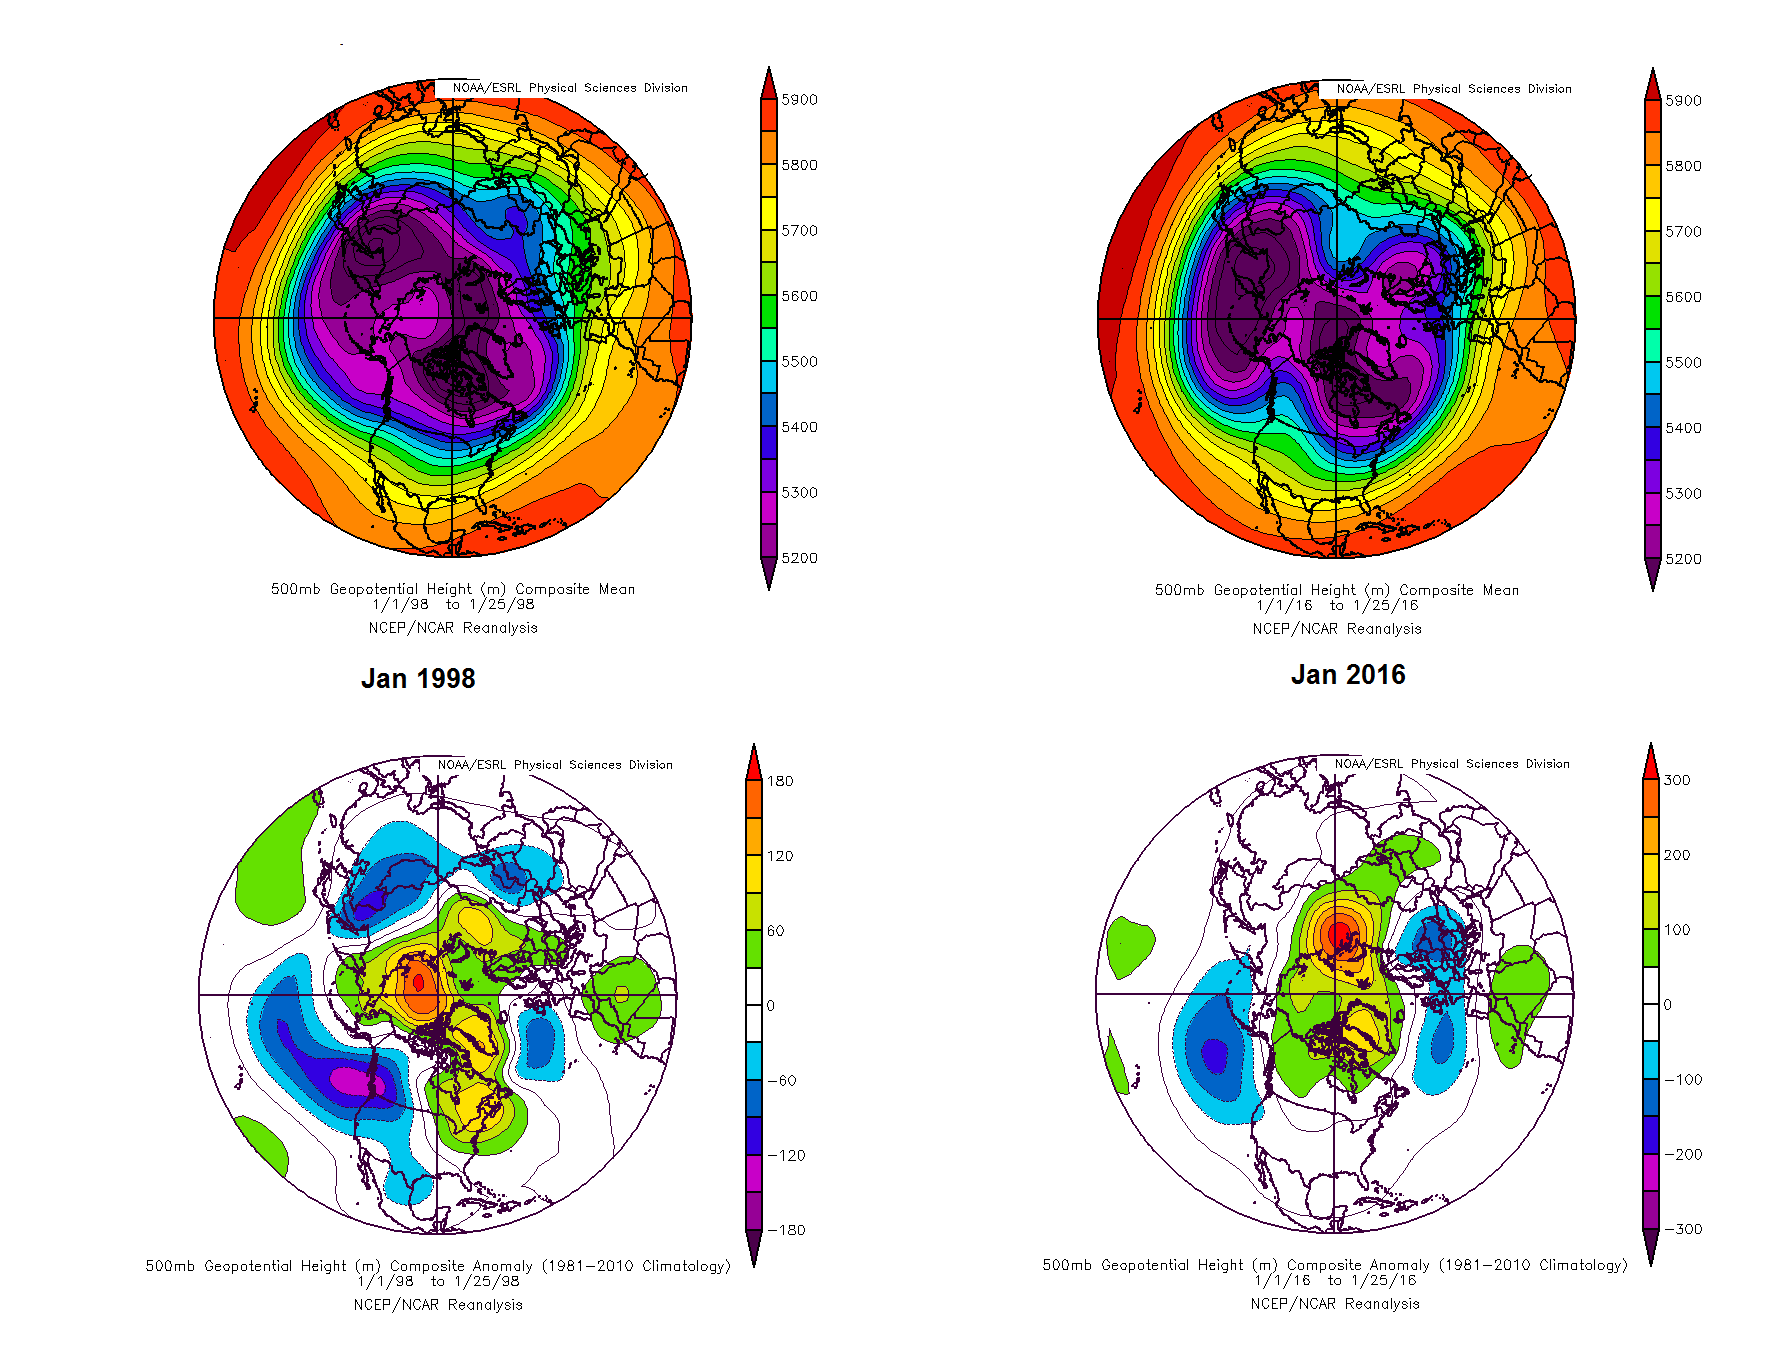 500m mean heights and anomalies for 1998 and 2016 for January 1st to 25th